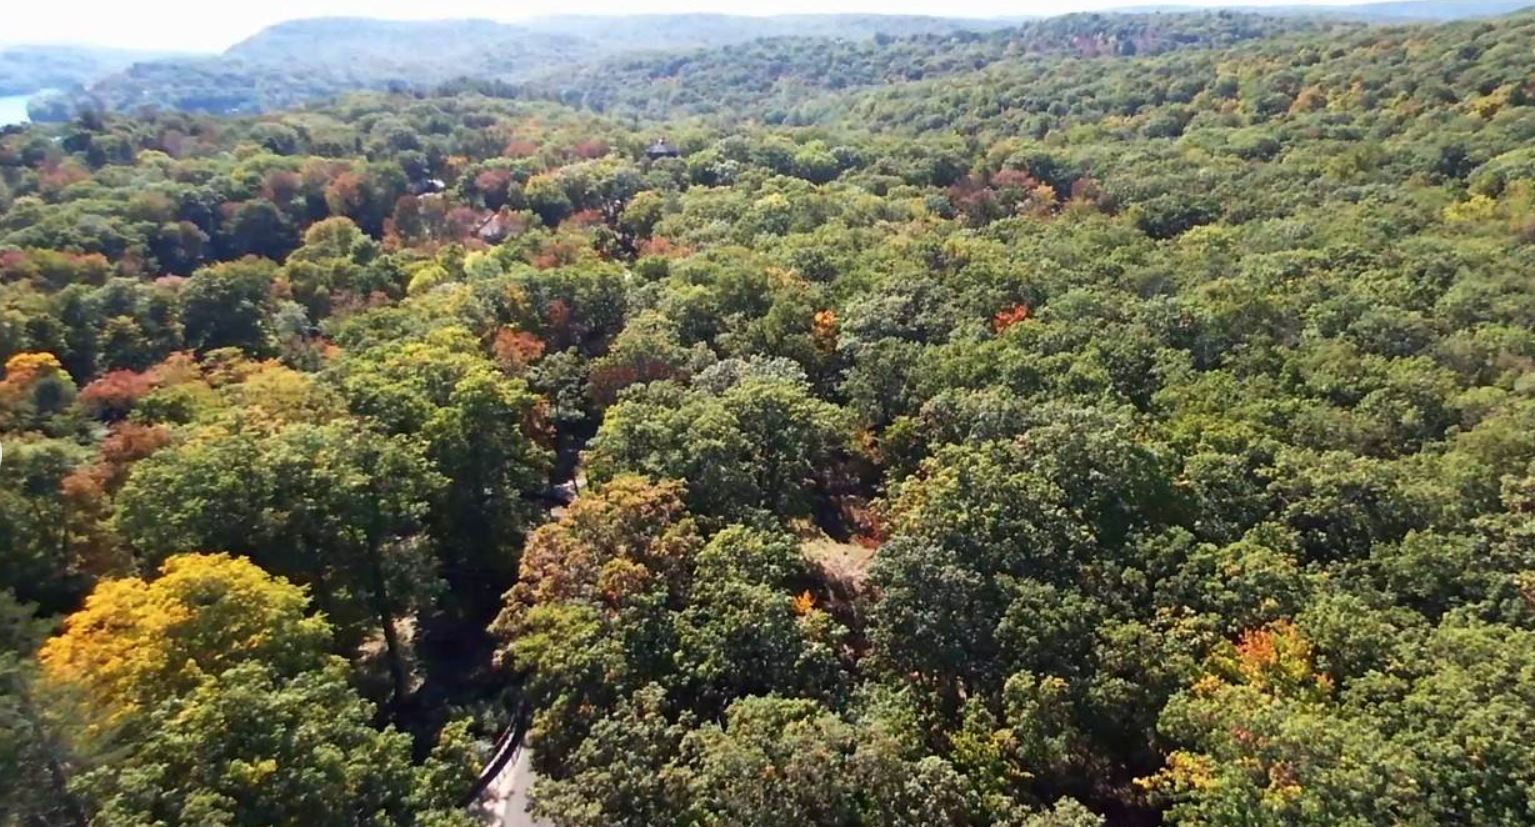 The land at Summit Road in Tuxedo Park is available for $980,000